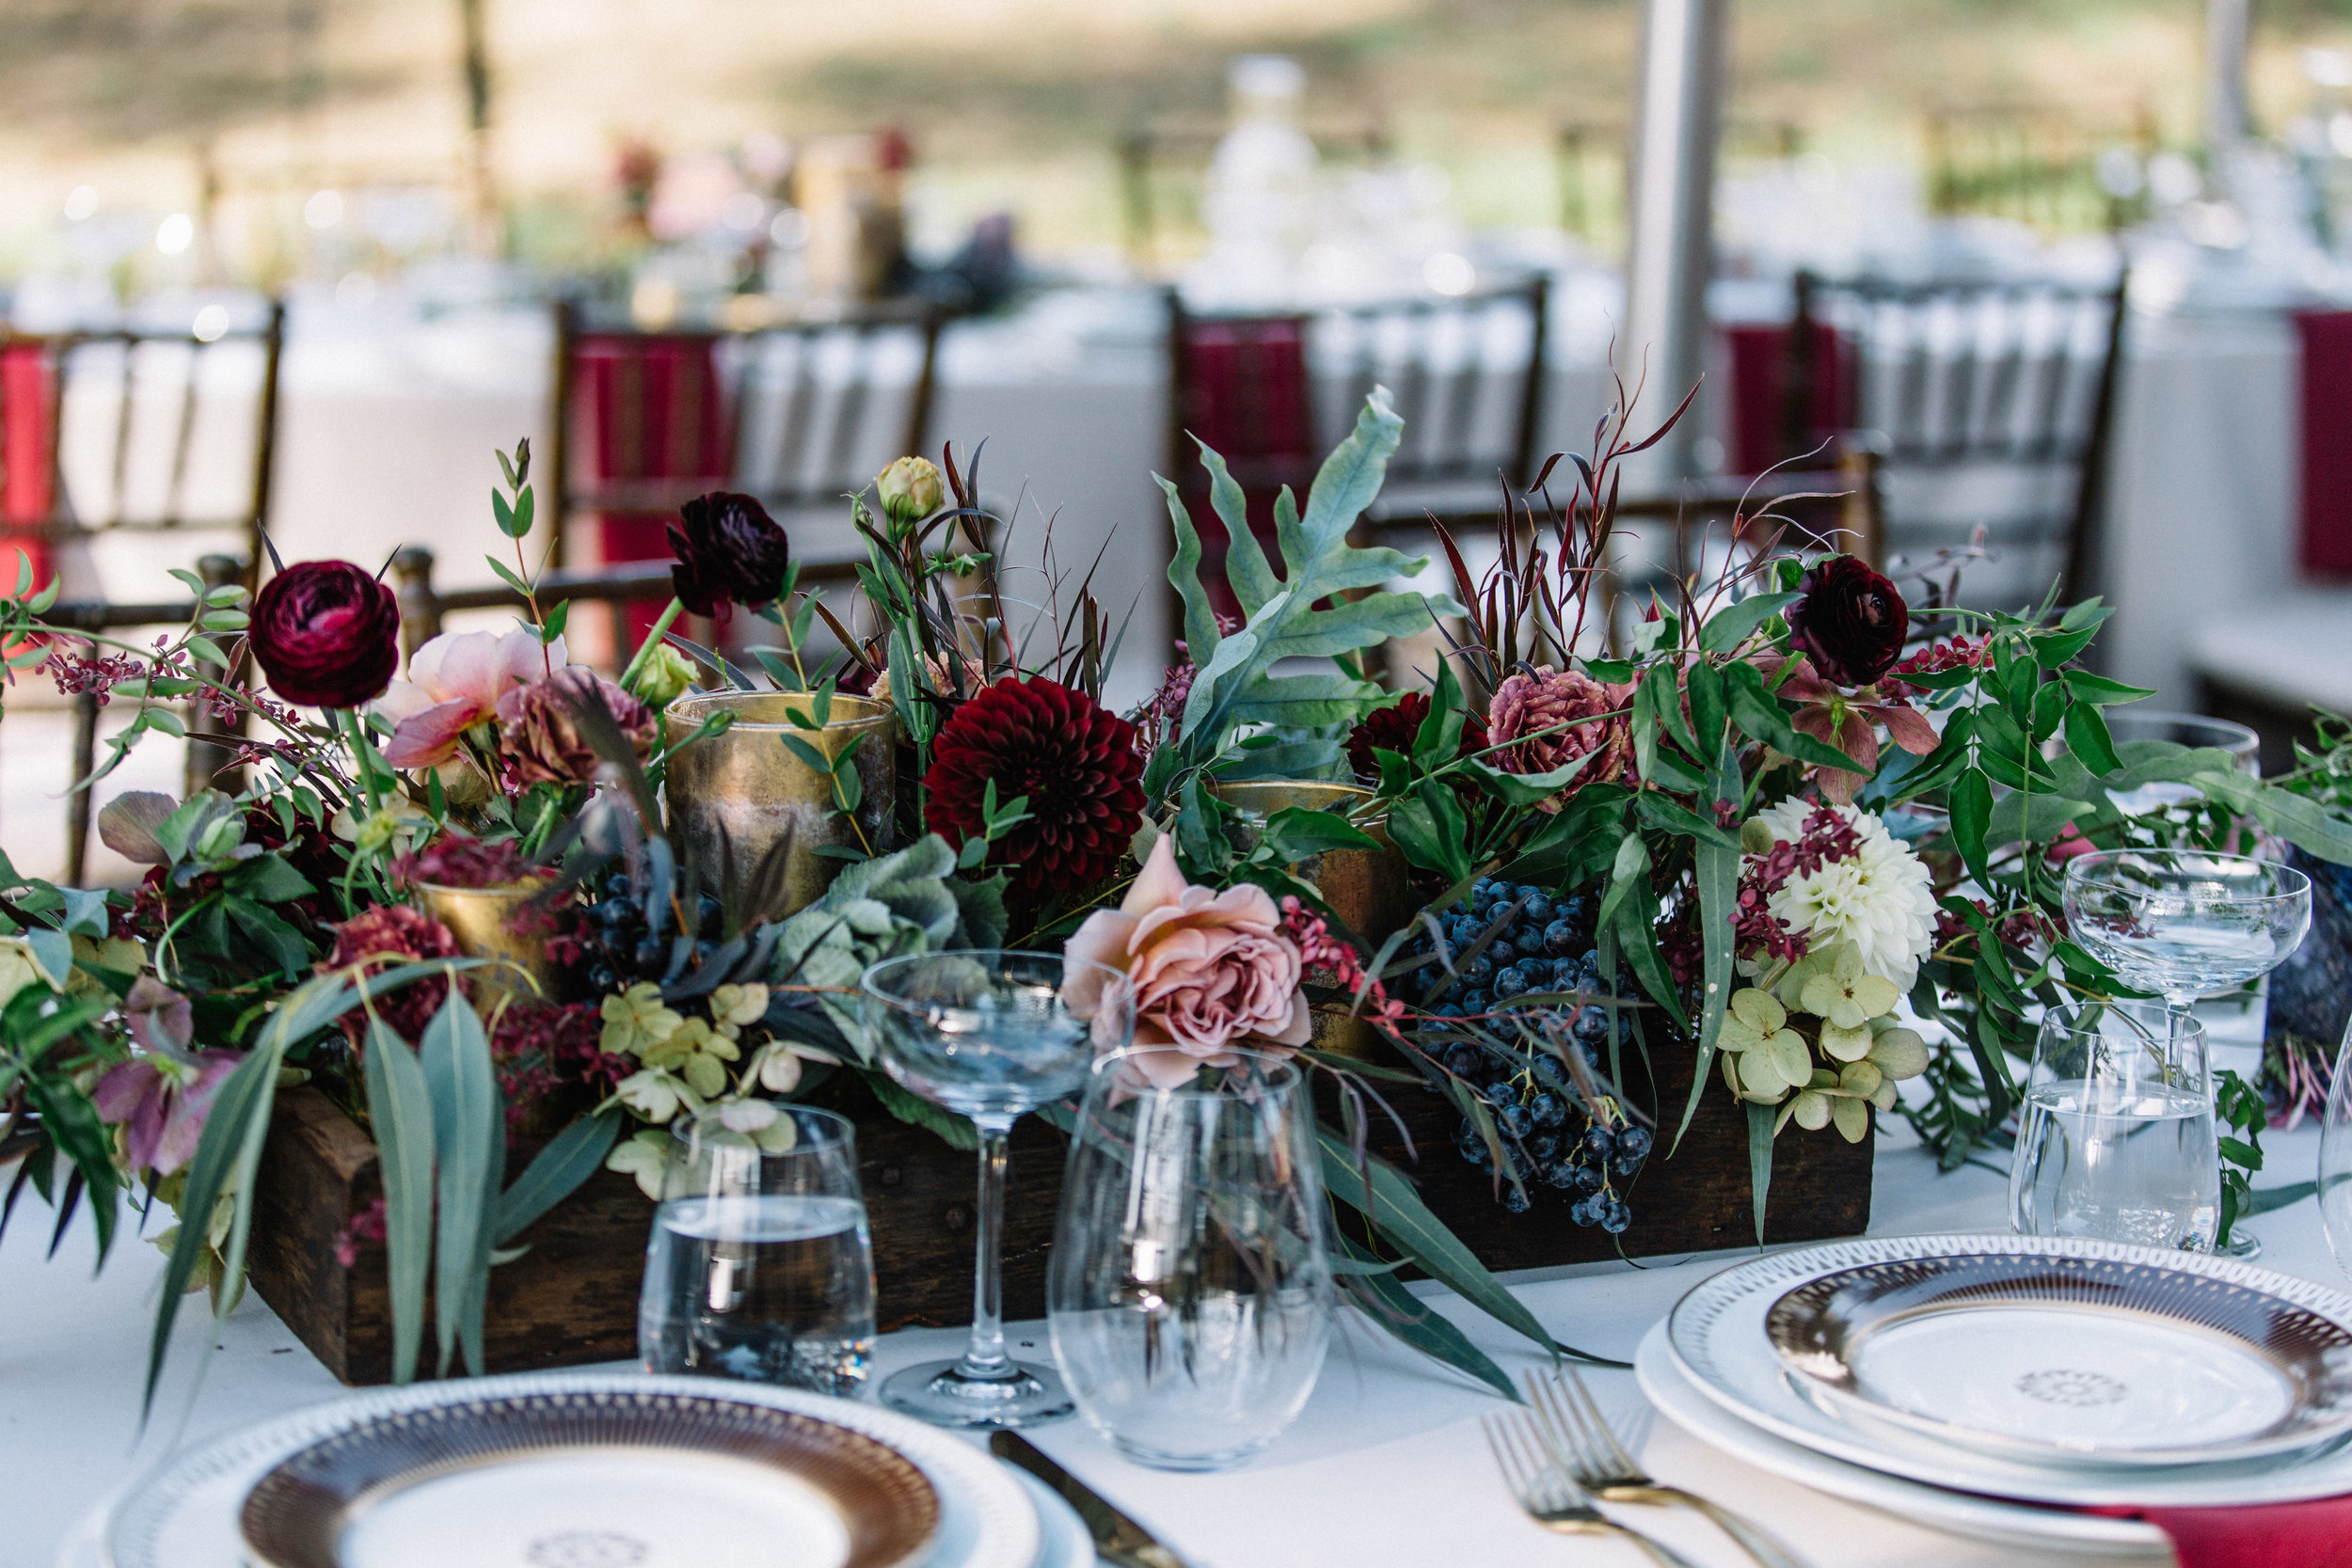 Wood box and antique gold candle centerpiece with moody florals and greenery by Venn Floral photographed by Lucille Lawrence at a coastal outdoor wedding with Mendocino Weddings, Straus Home Ranch, and Erica Steiner Fine Art.